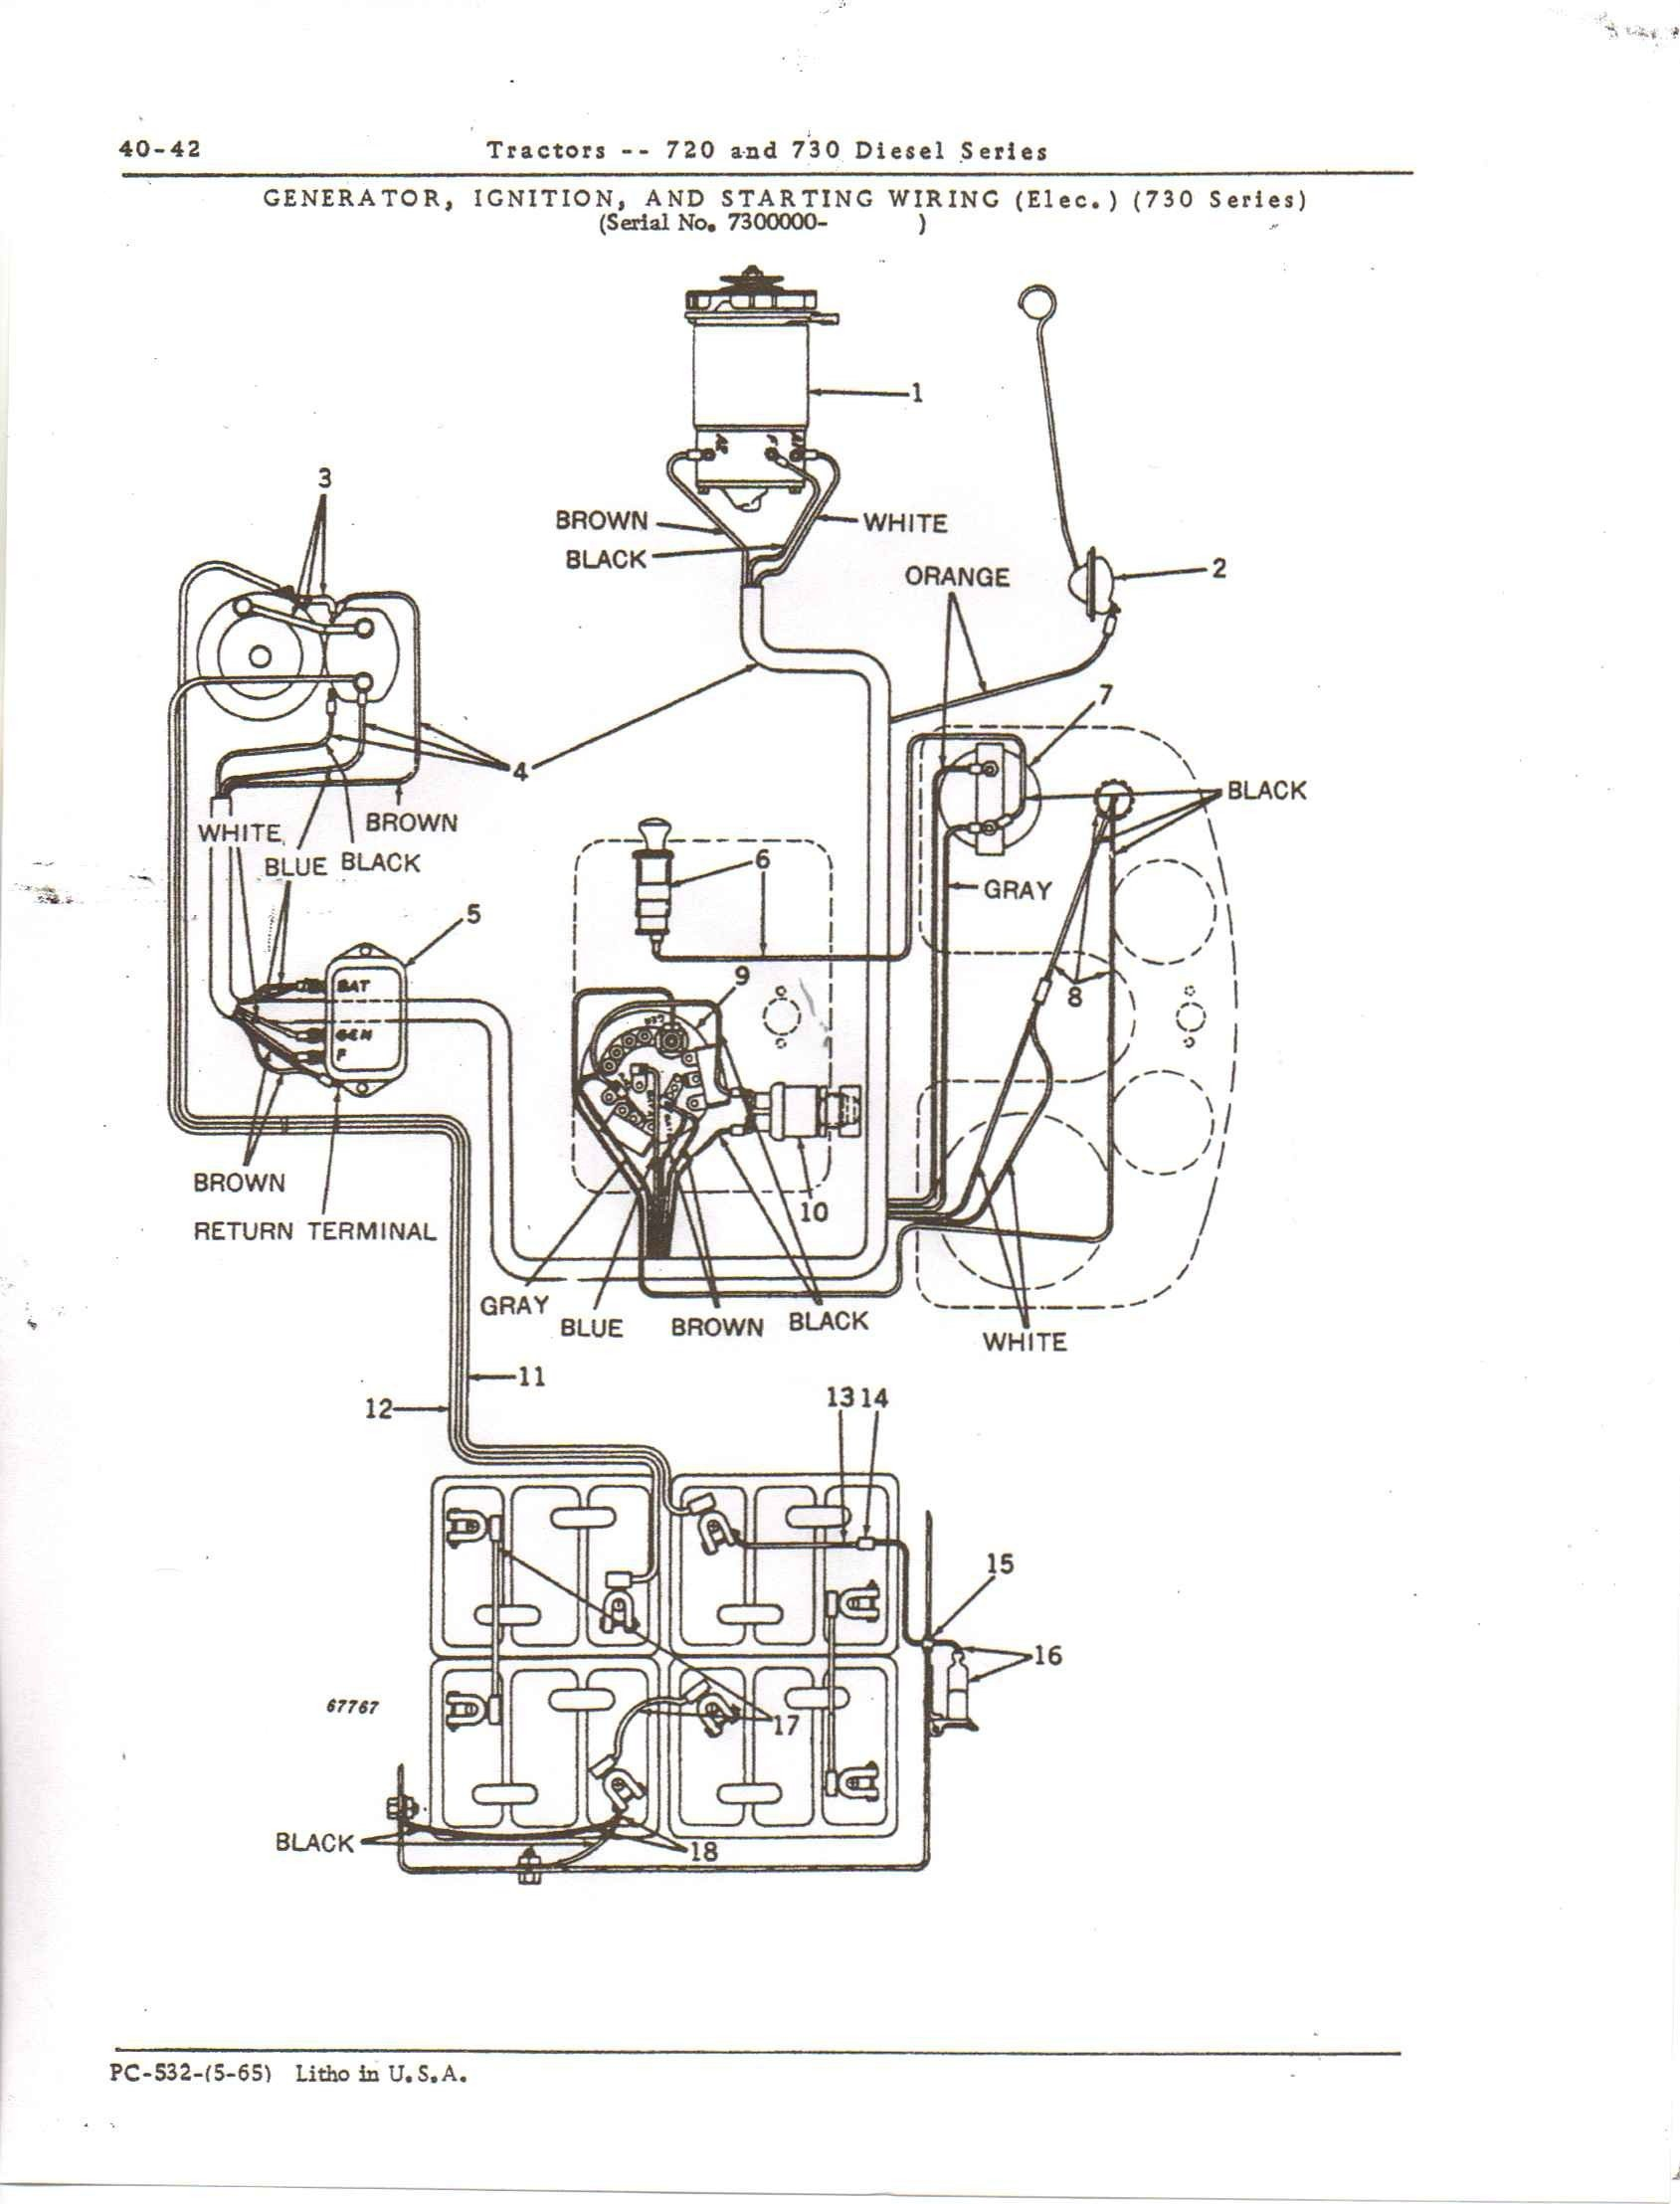 john deere l120 deck parts diagram awesome john deere sabre riding mower wiring diagram diy enthusiasts of john deere l120 deck parts diagram